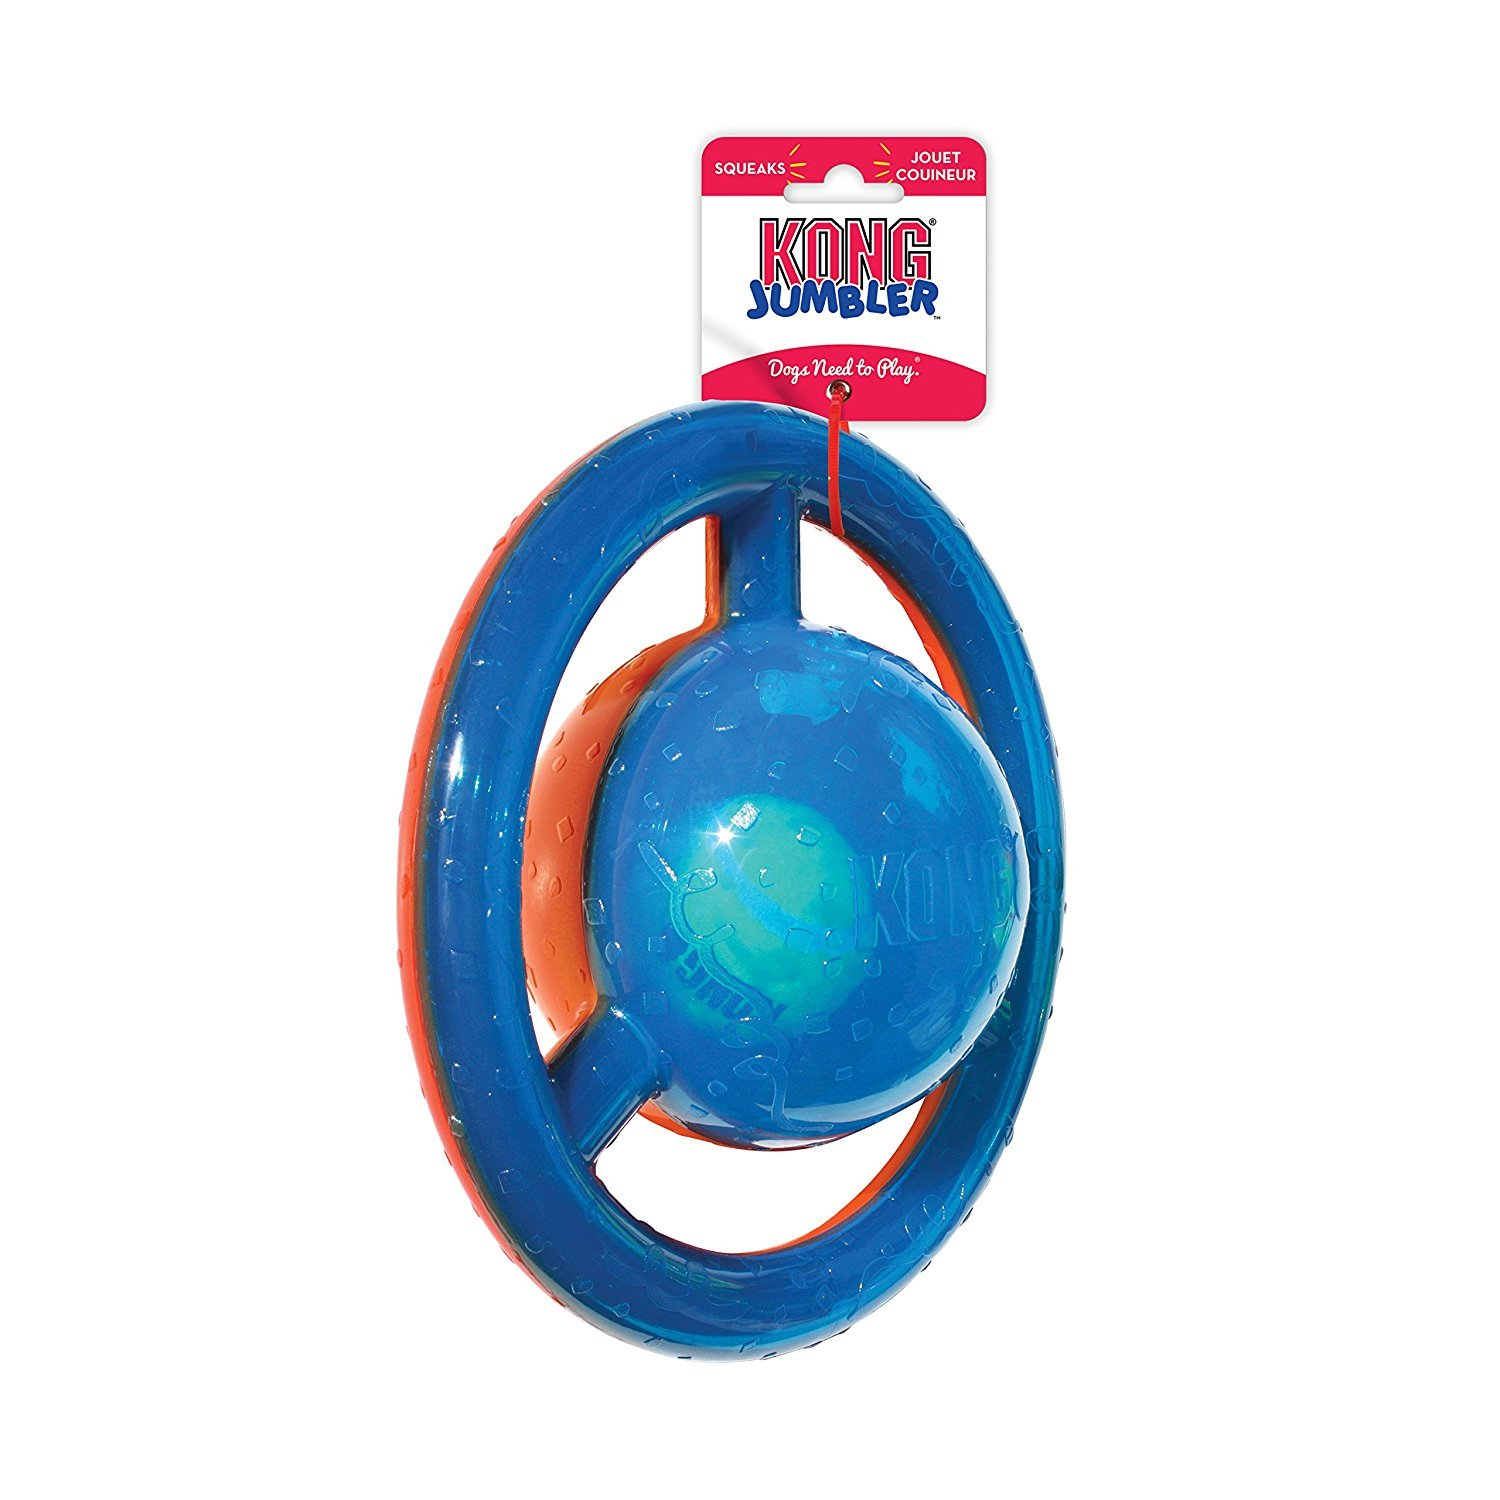 KONG Jumbler Disc 2-in-1 Squeak and Tug Dog Toy image 1